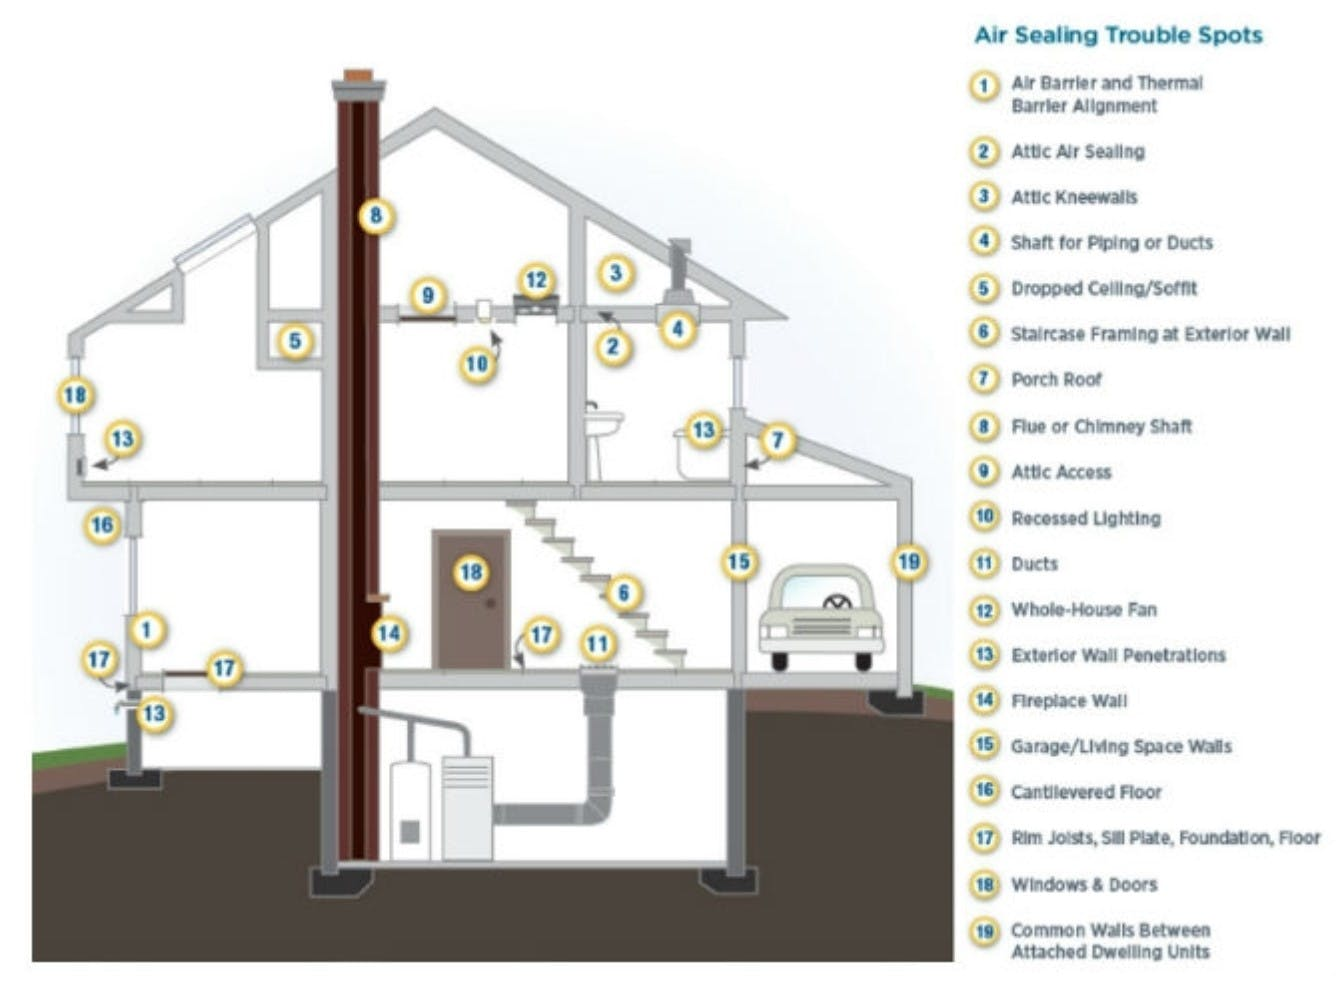 A diagram depicting the the air sealing trouble spots of a modern home.